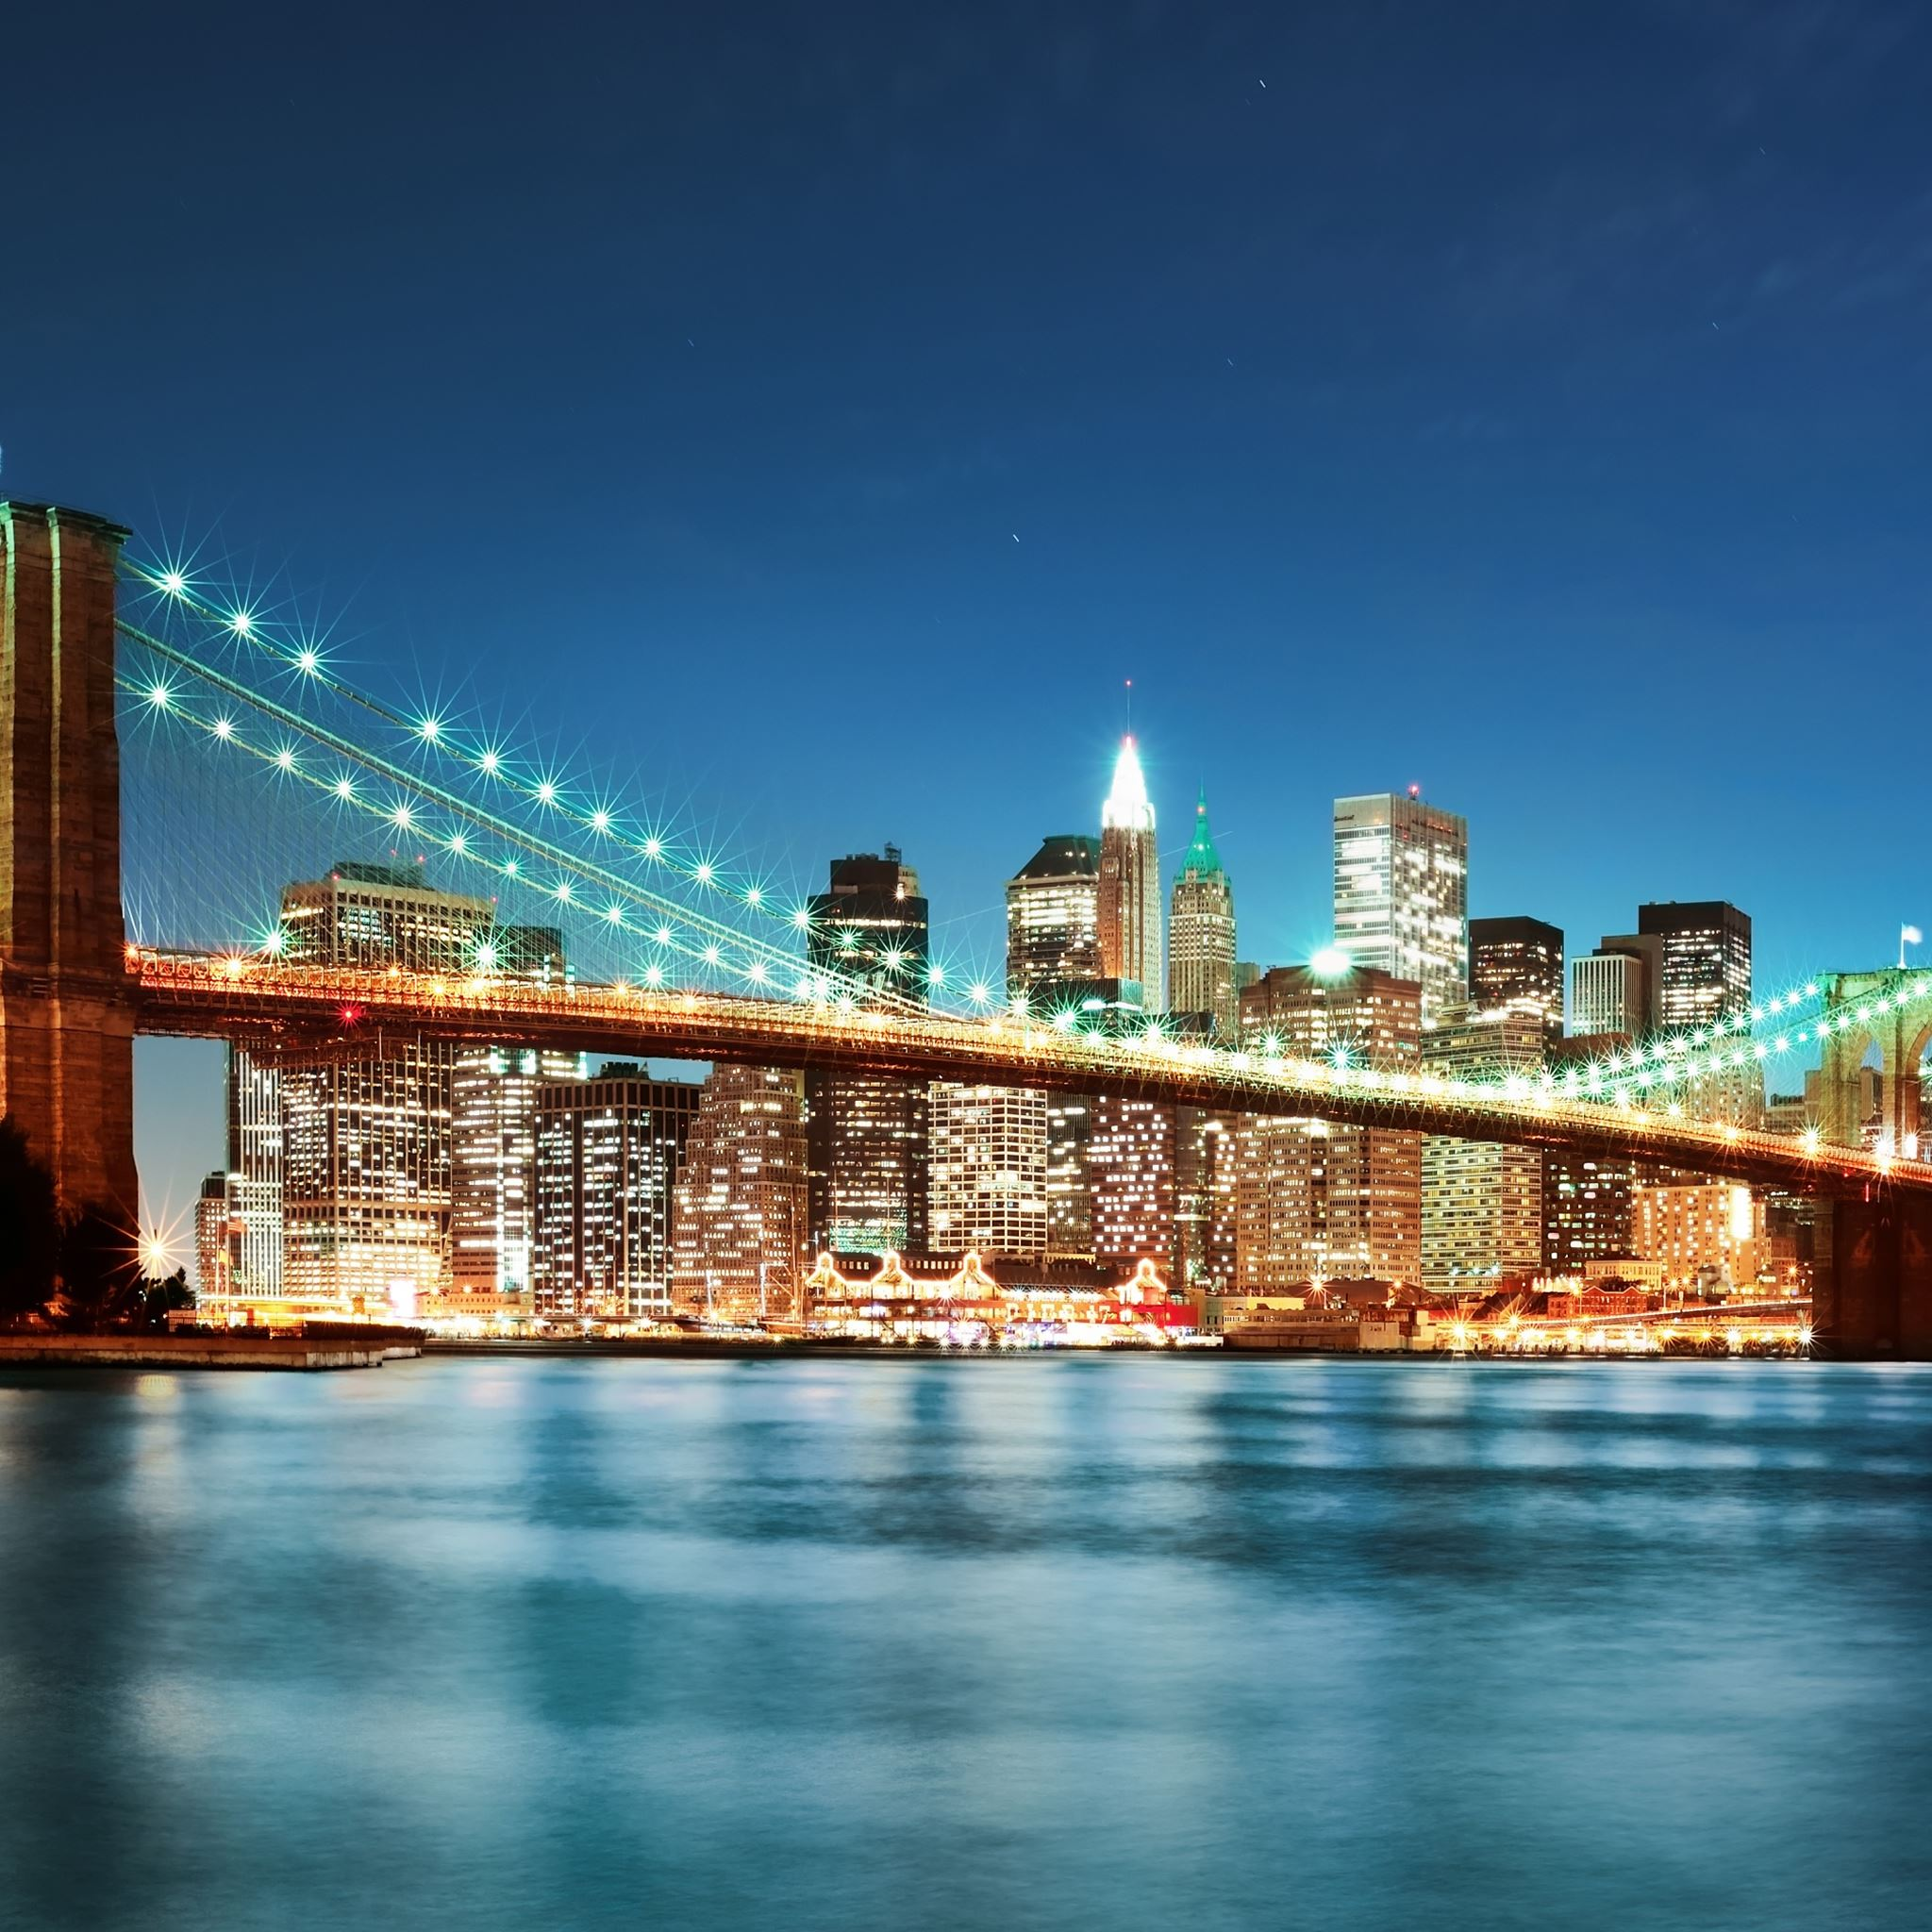 New York City Night Lights iPad Air wallpaper